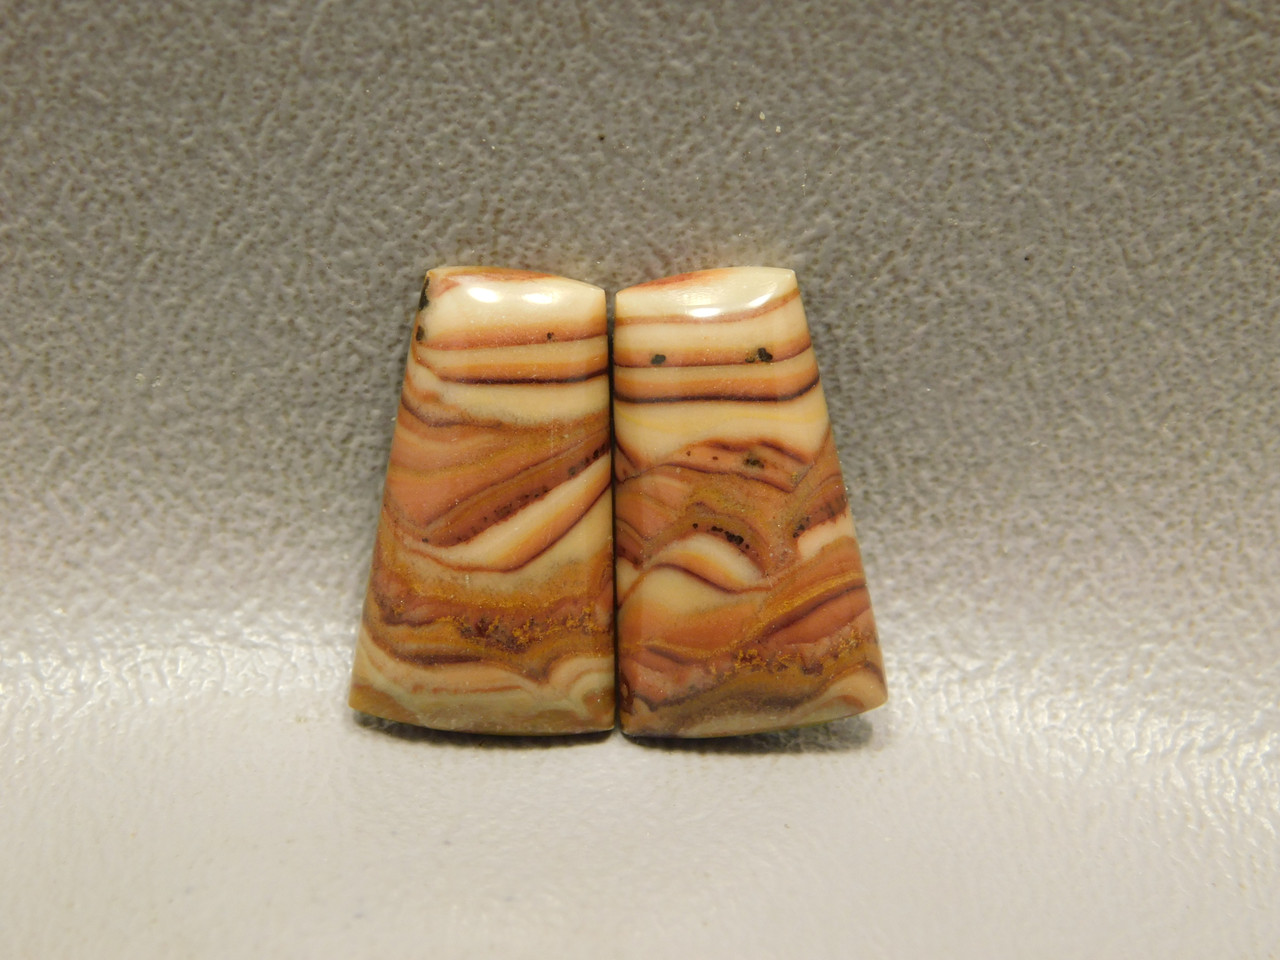 Stones Cabochons Wave Dolomite Matched Pairs Jewelry Supplies #6